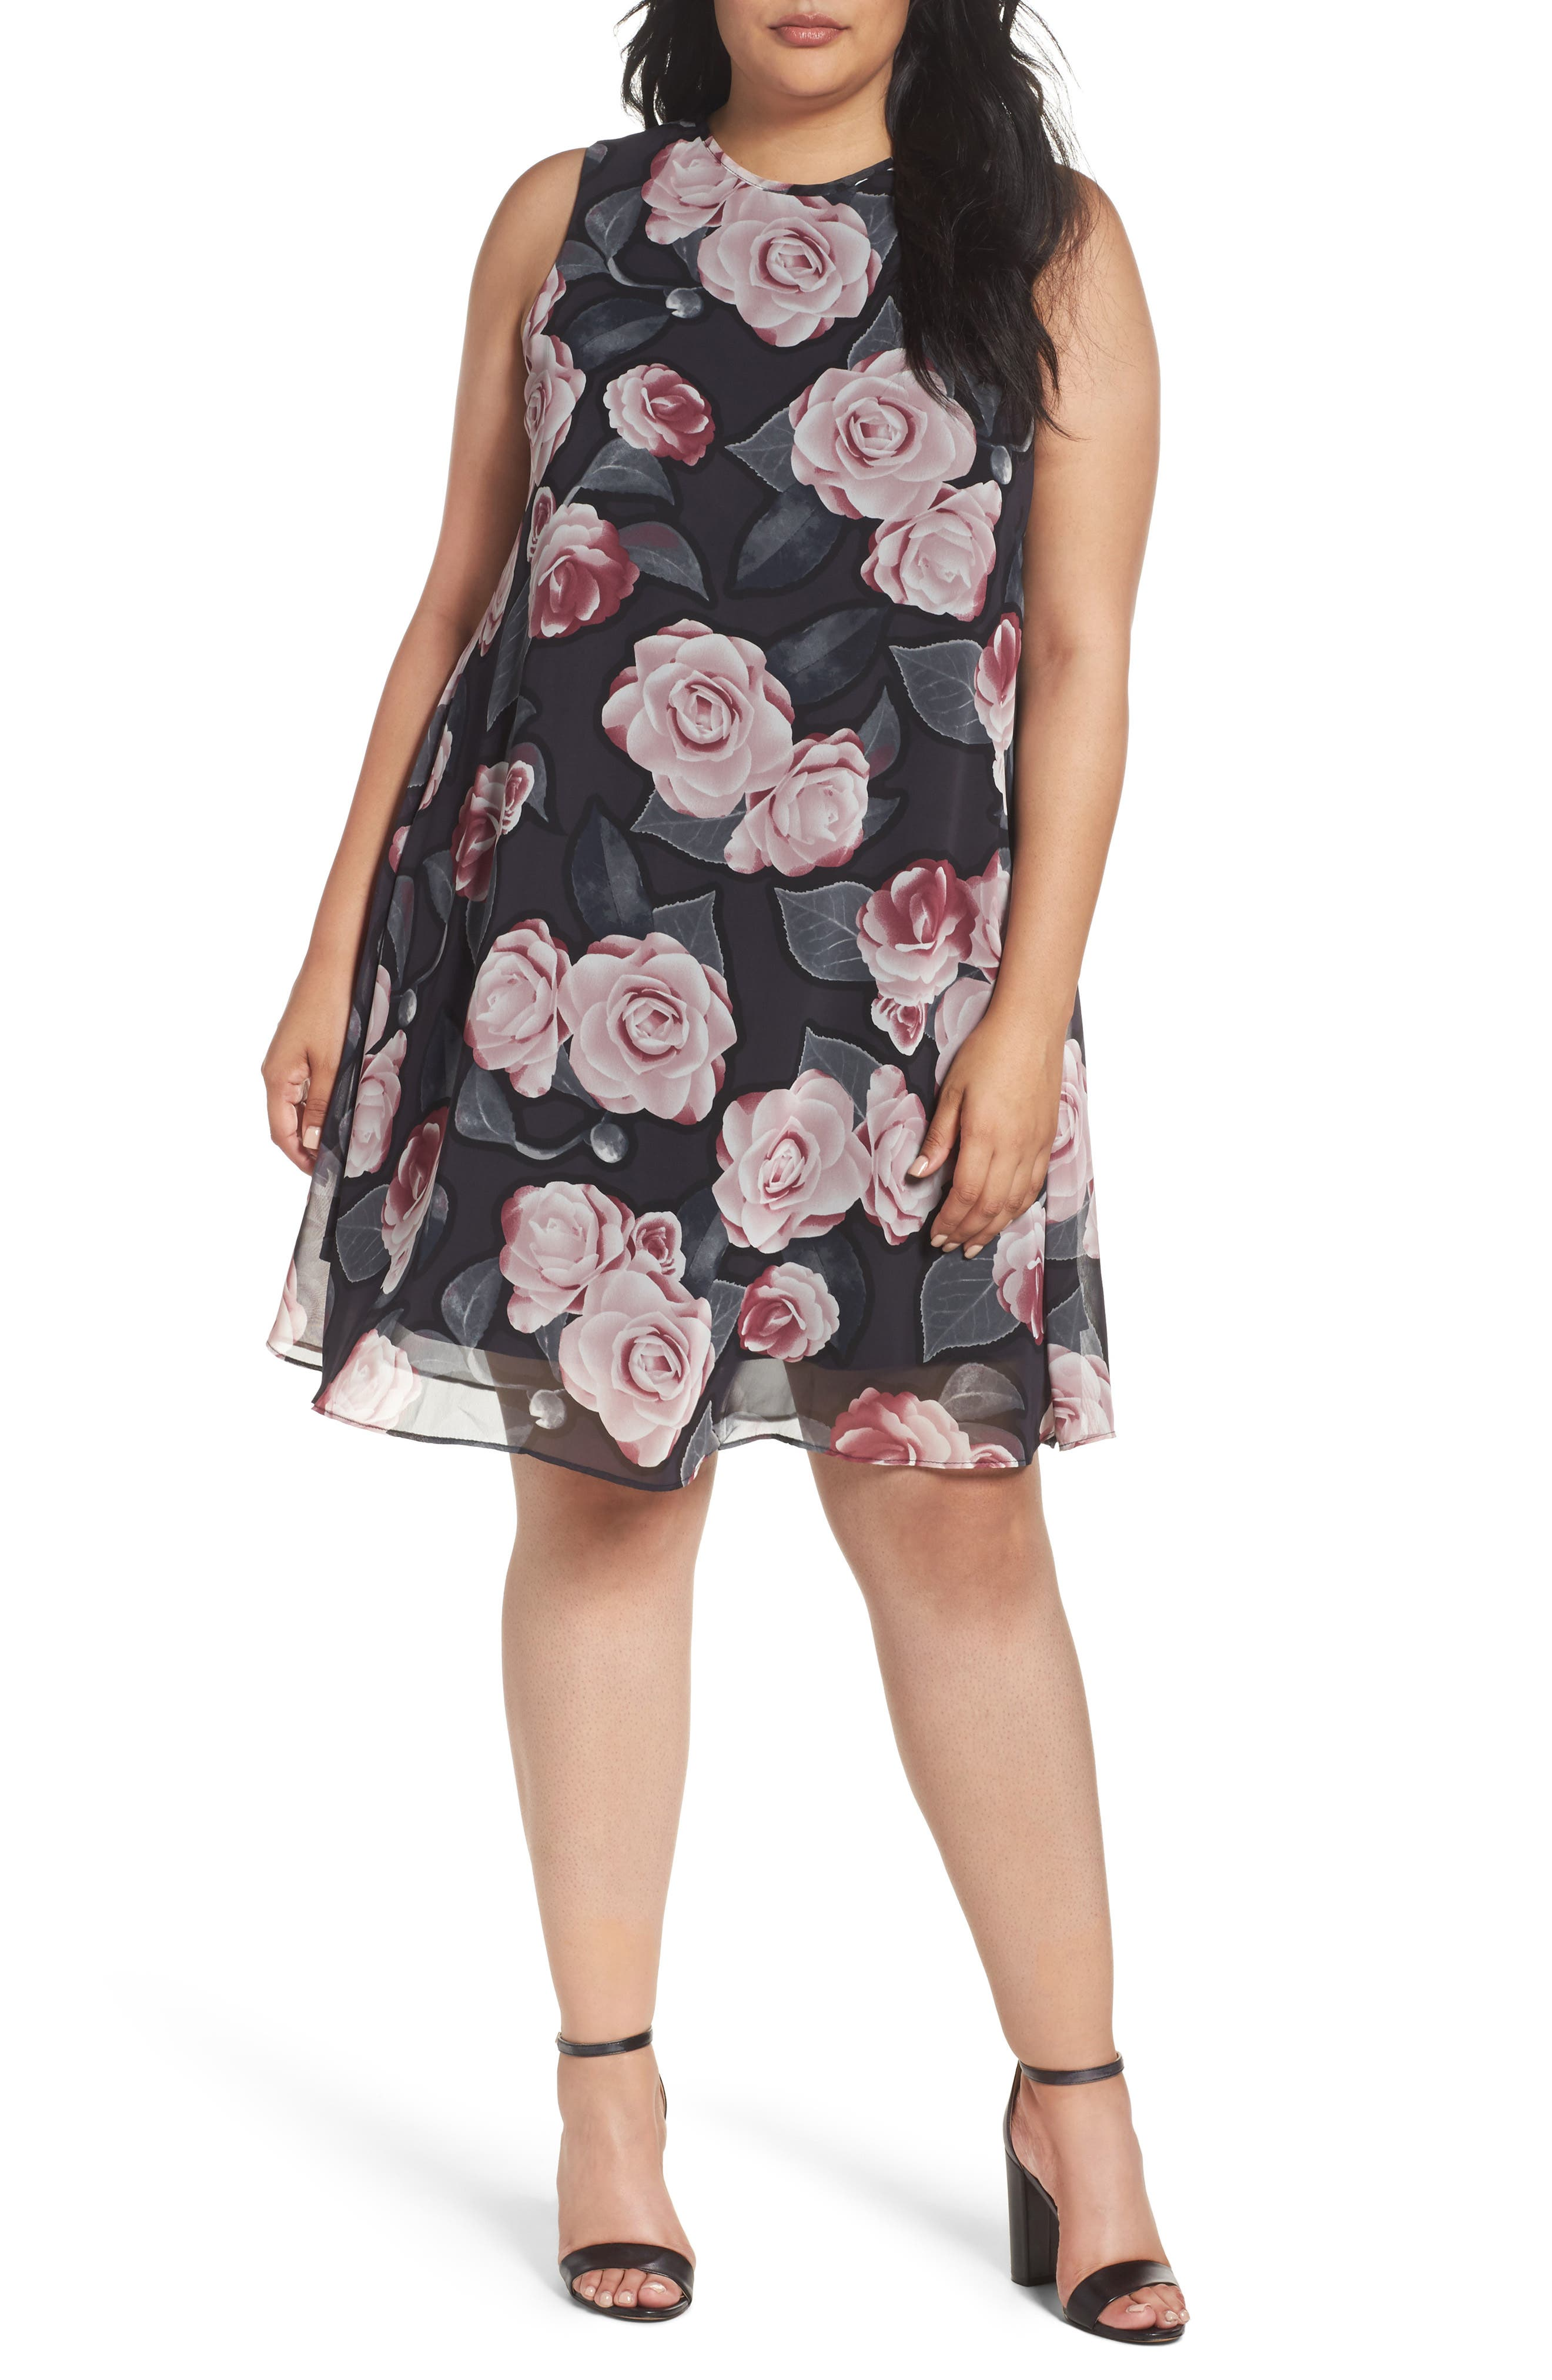 Taylor Dresses Moonlit Rose Chiffon Swing Dress (Plus Size)